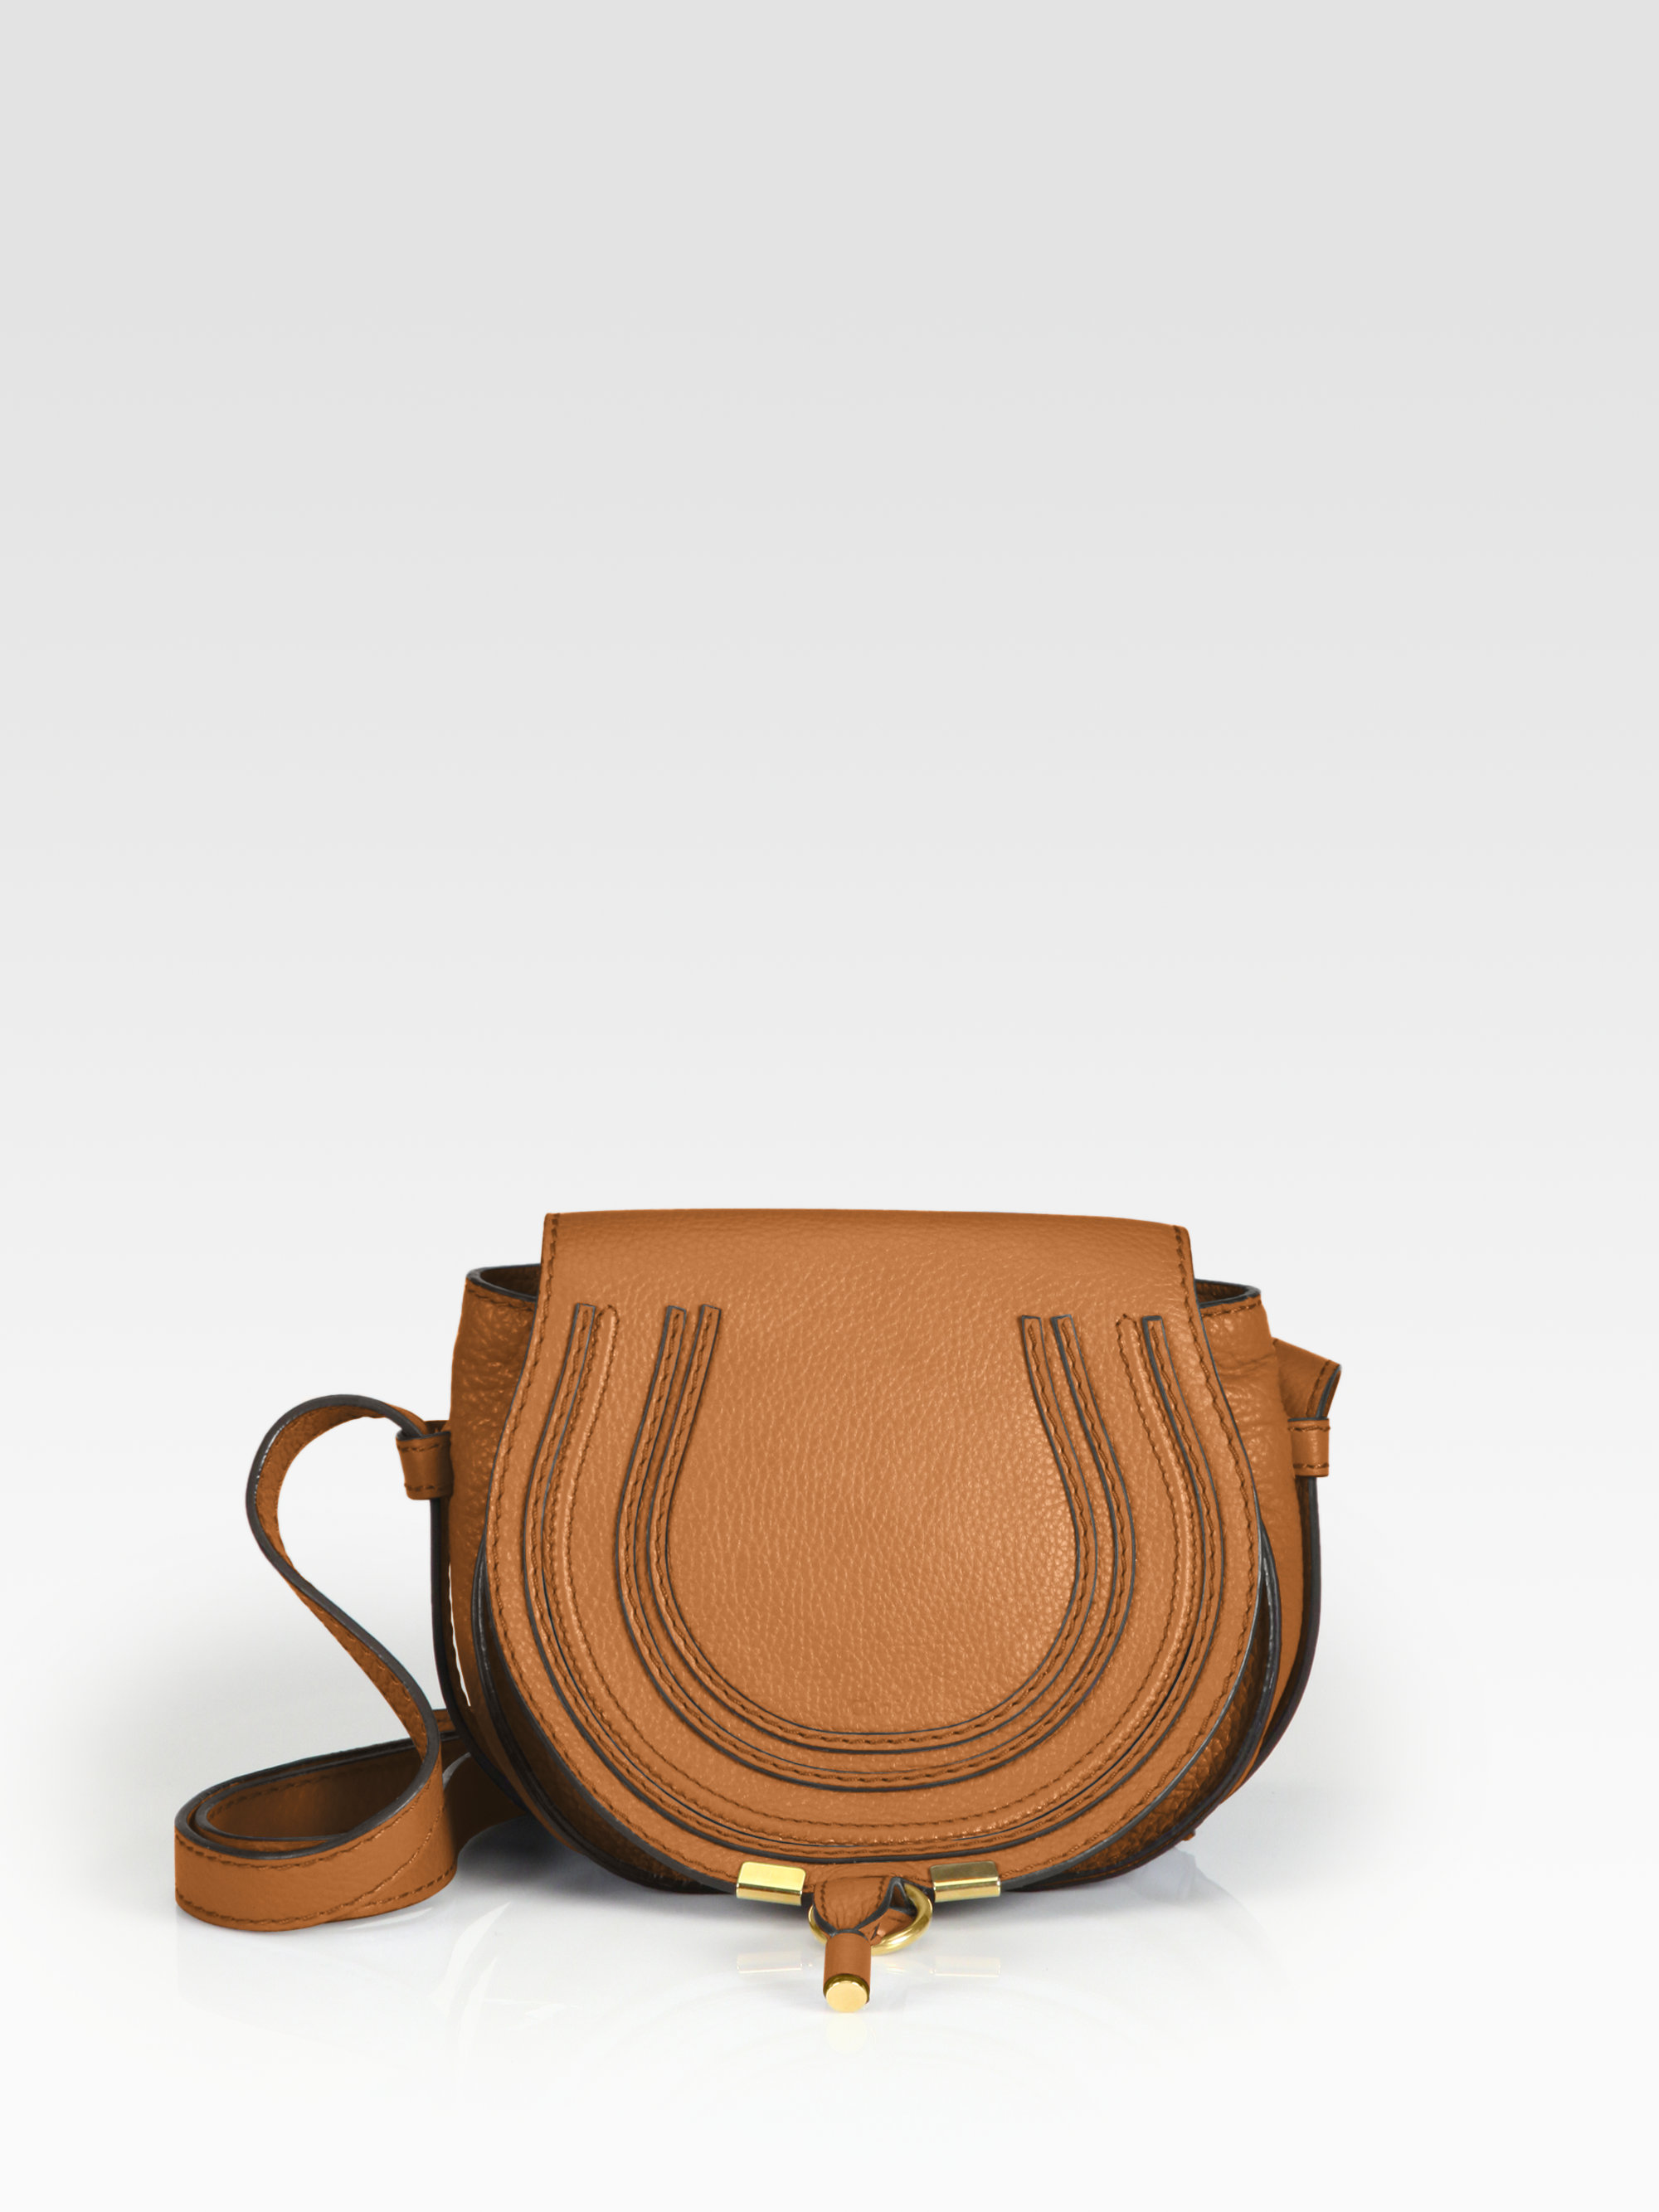 chole purses - Chlo�� Marcie Small Crossbody Bag in Brown (tan) | Lyst